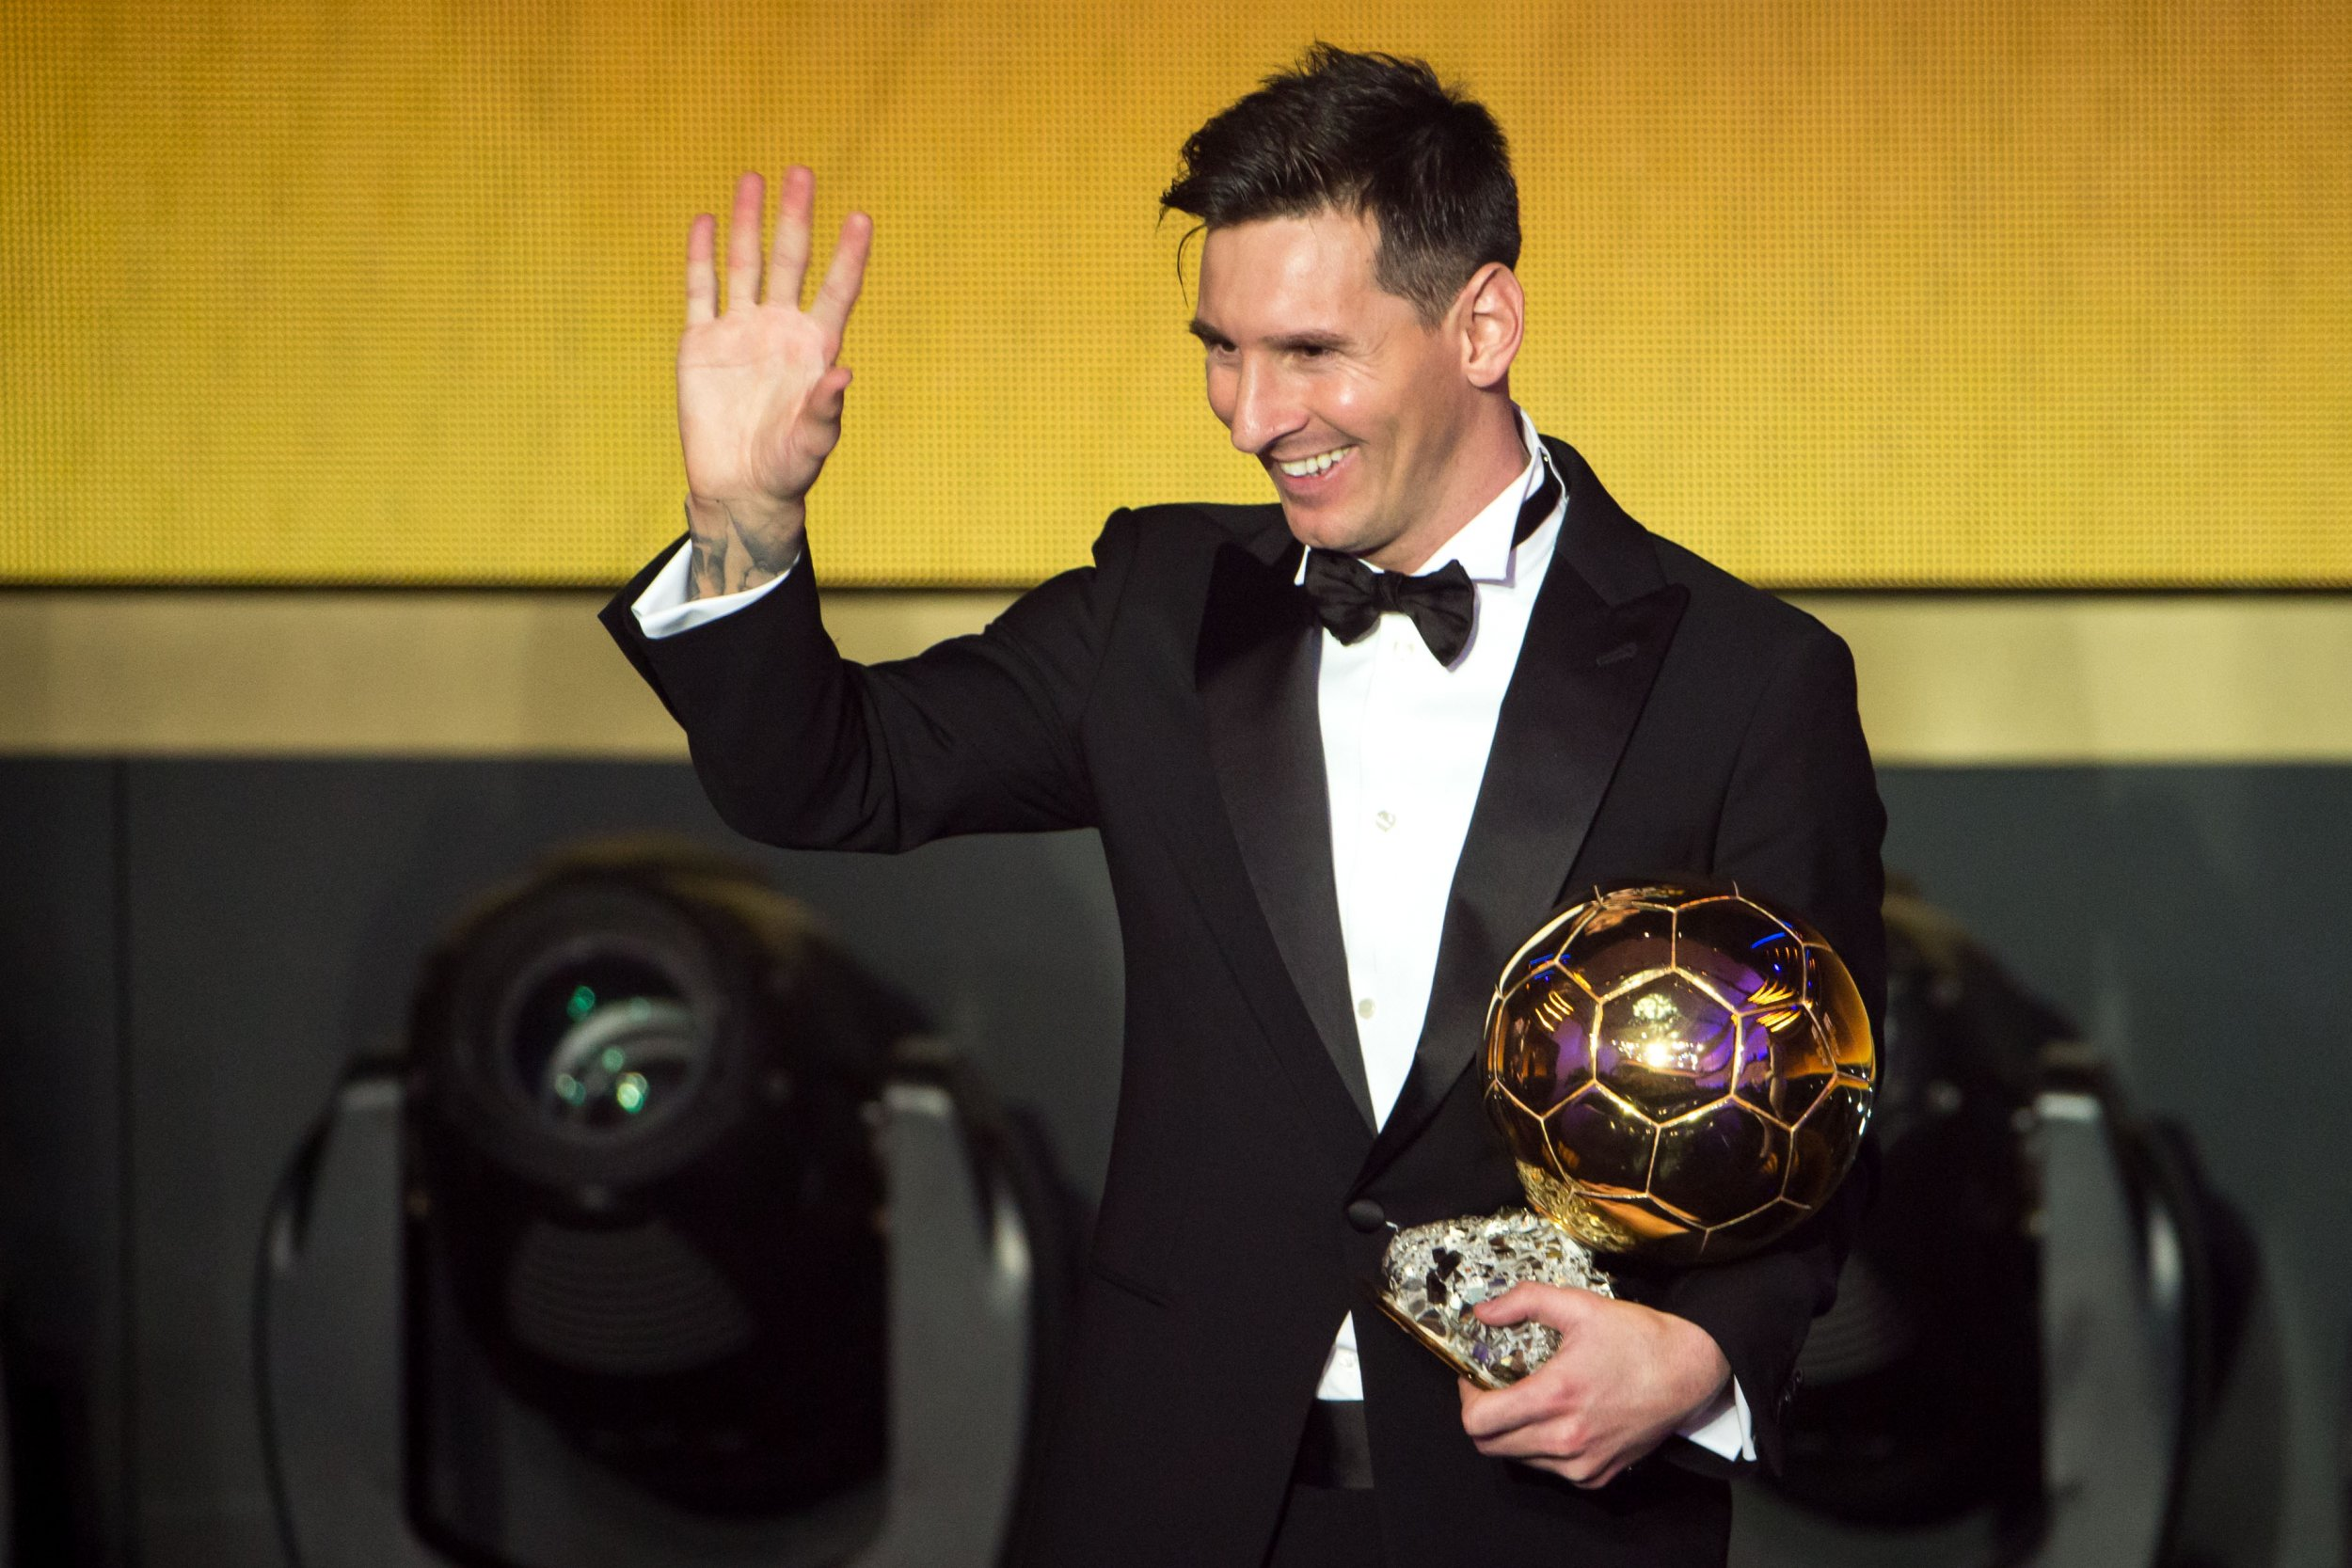 ea80684dc31 FIFA Ballon d'Or winner Lionel Messi of Argentina and Barcelona gestures  after the FIFA Ballon d'Or Gala 2015 at the Kongresshaus on January 11, ...